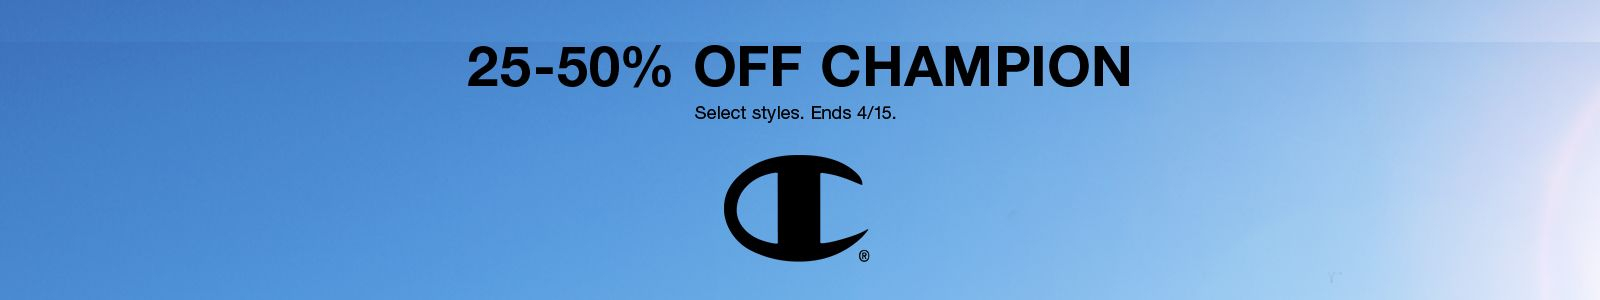 25-50% Off Champion, Select styles, Ends 4/15